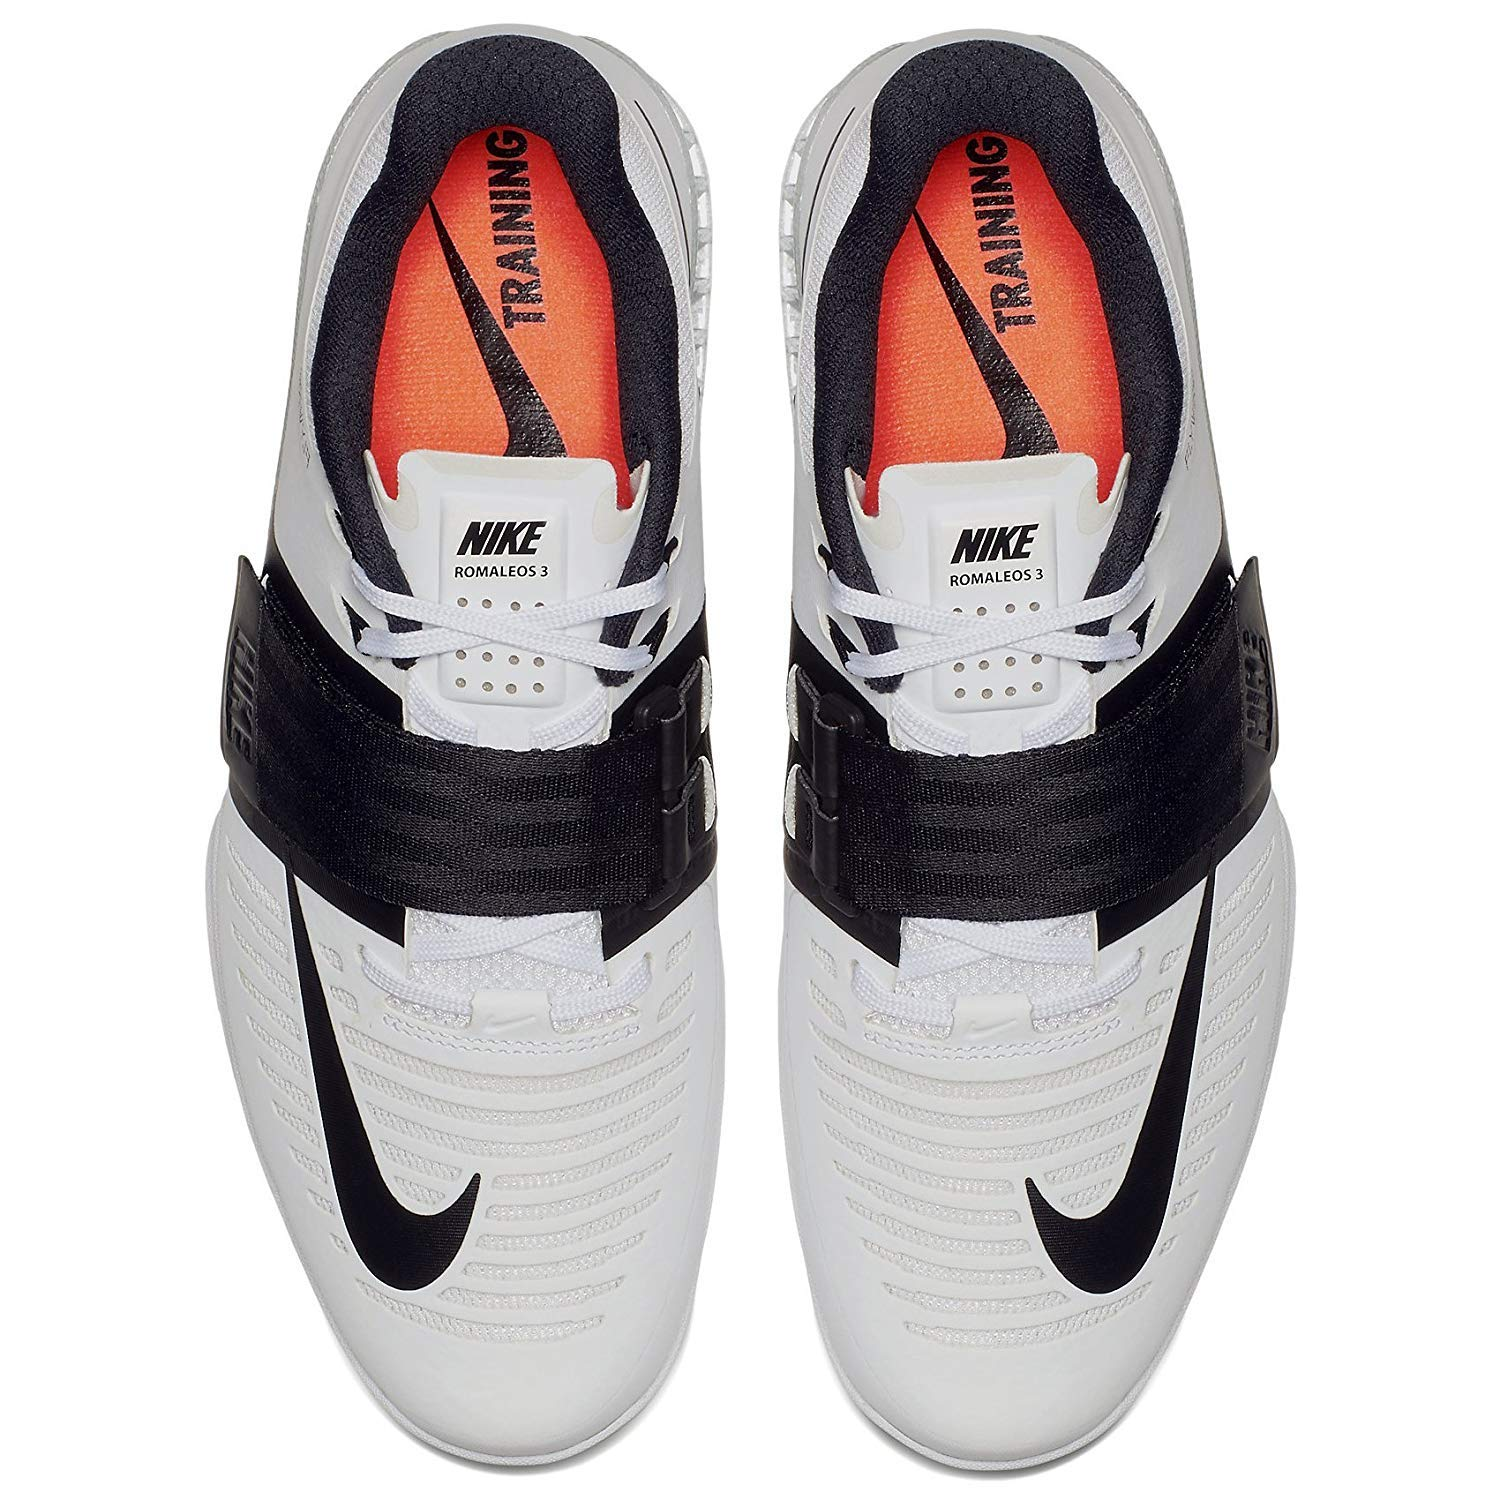 half off 0171a 299ec Amazon.com  Nike Mens Romaleos 3 Weightlifting Shoes  Fitness   Cross-Training